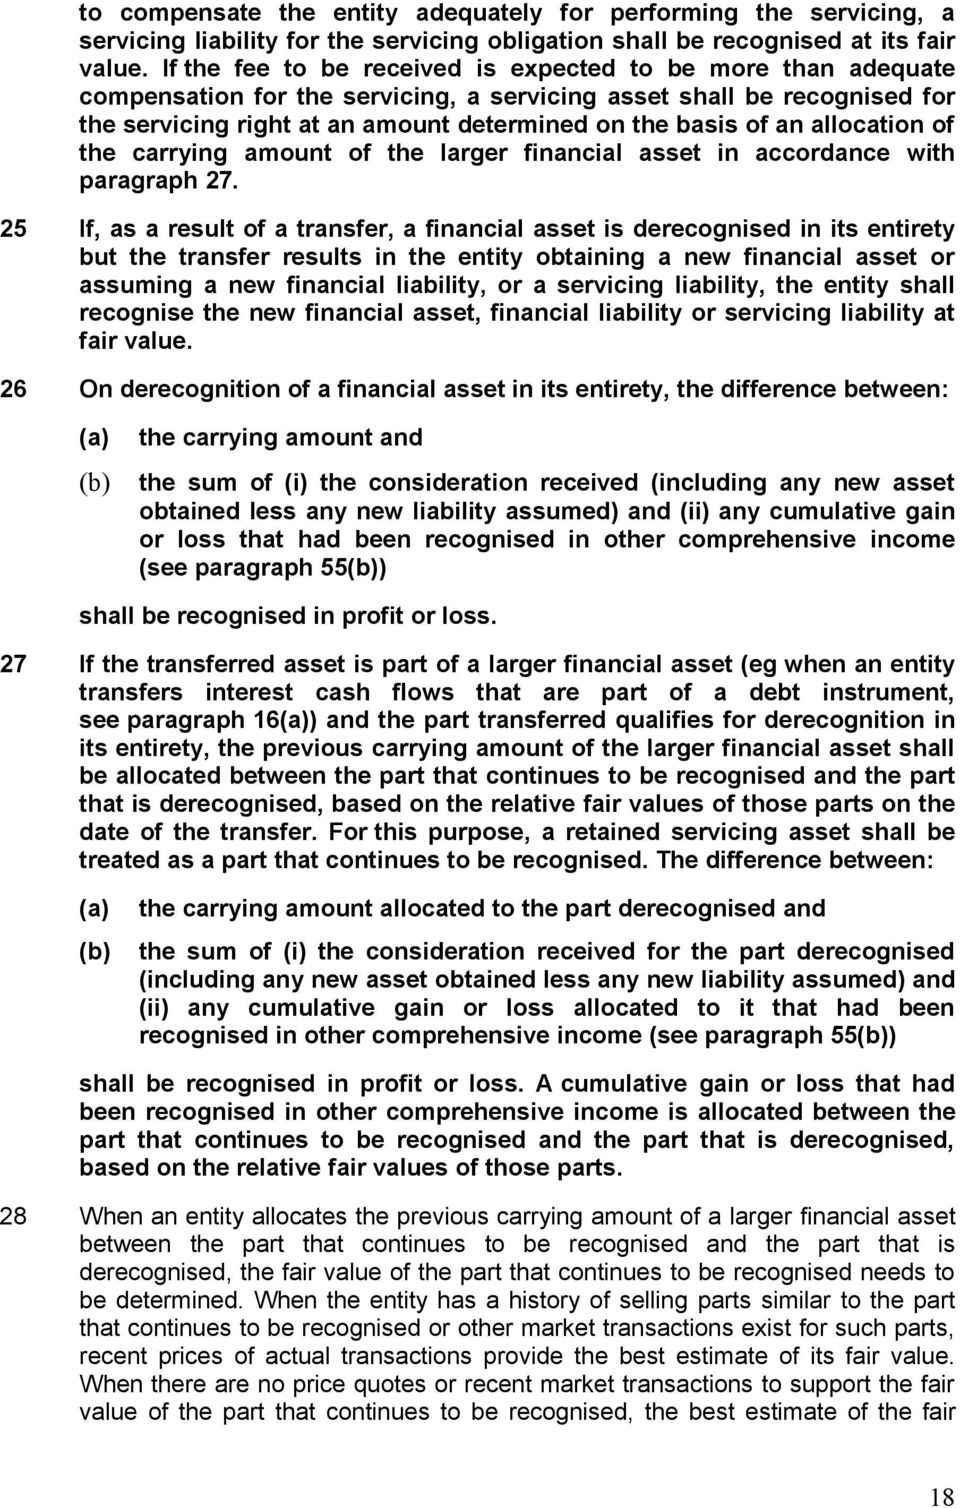 allocation of the carrying amount of the larger financial asset in accordance with paragraph 27.